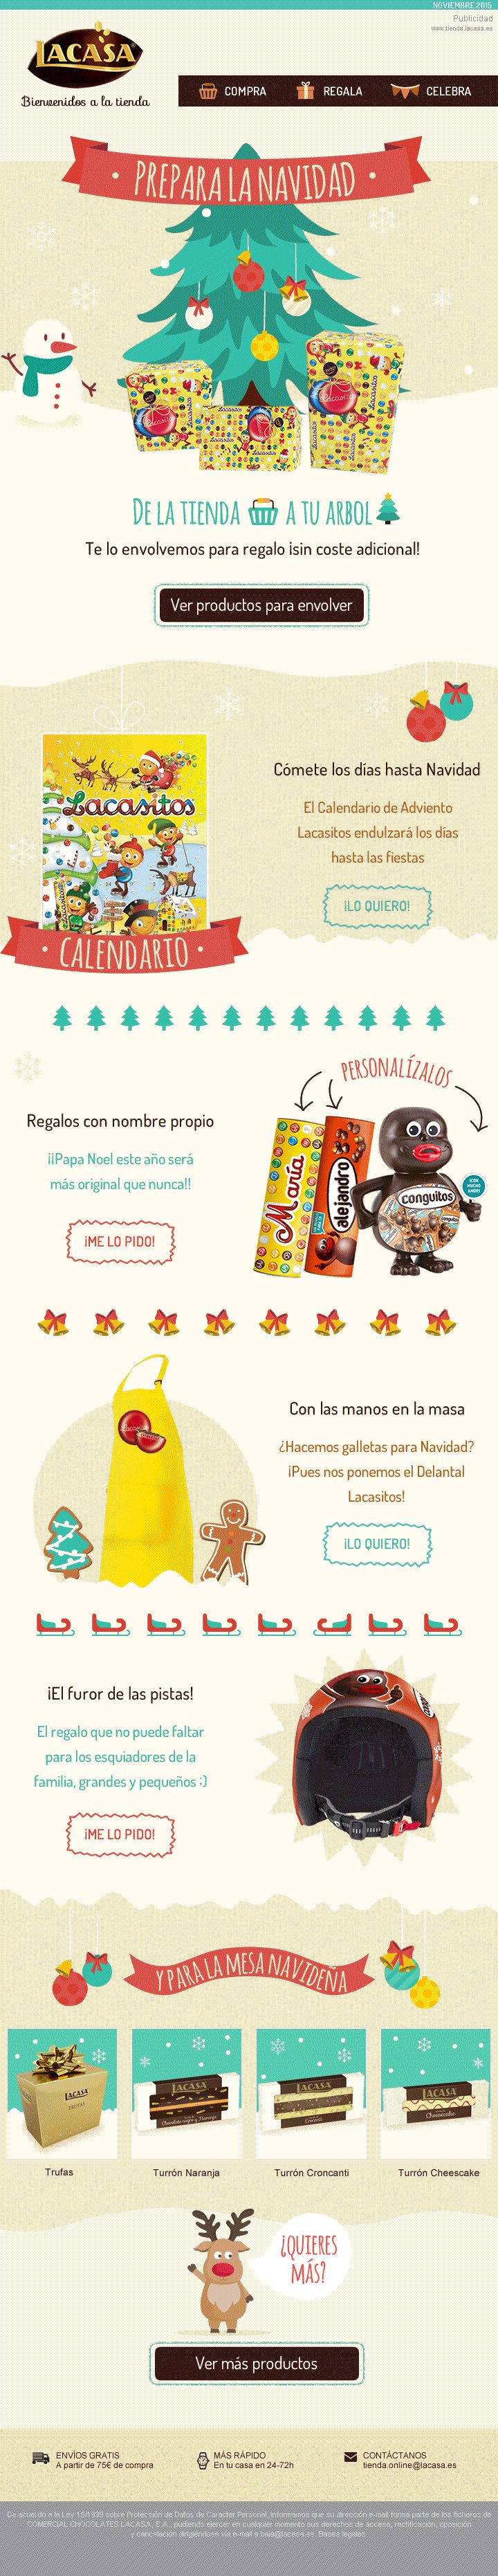 #CHOCOLATES #LACASA · A special newsletter designed to communicate many new products and to encourage users to visit the #estore for their Christmas ideas · https://www.tienda.lacasa.es